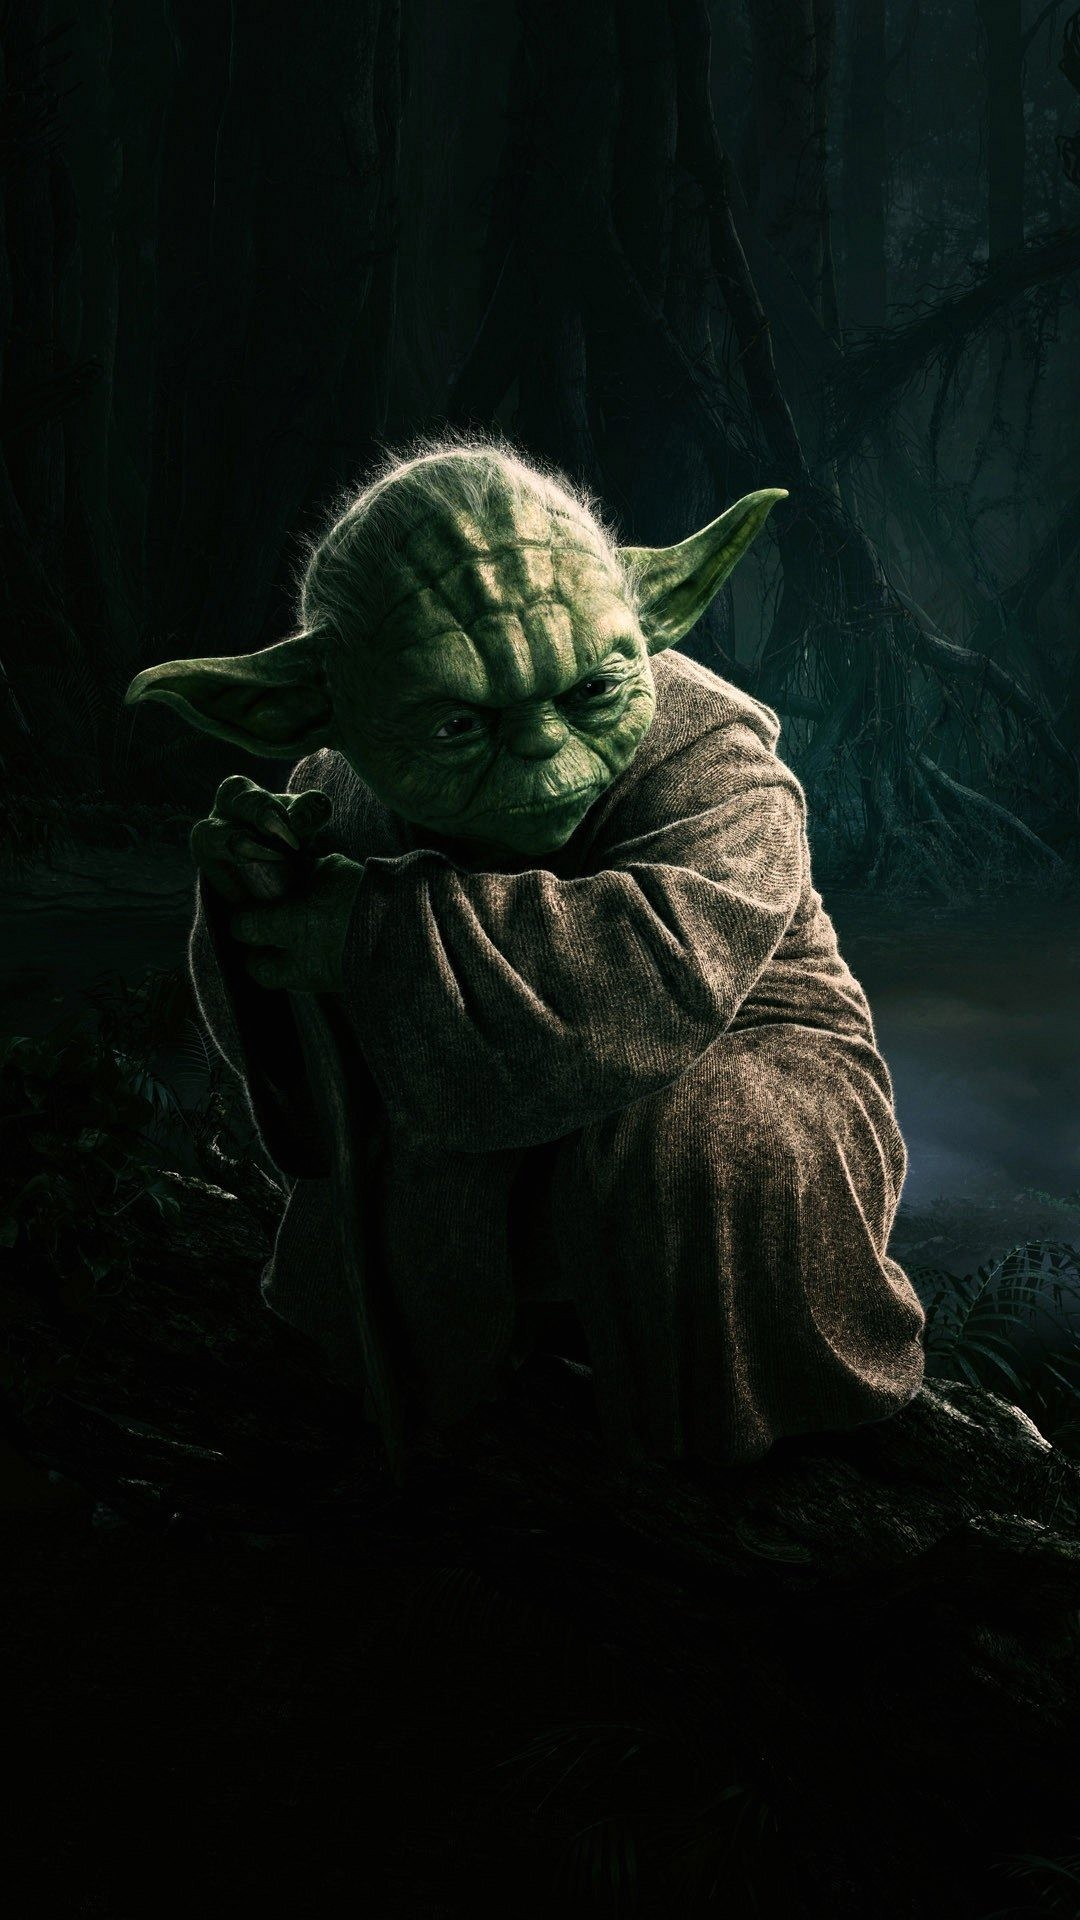 1080x1920 Yoda Star Wars Wallpaper photos of Epic Star Wars Iphone Wallpaper by